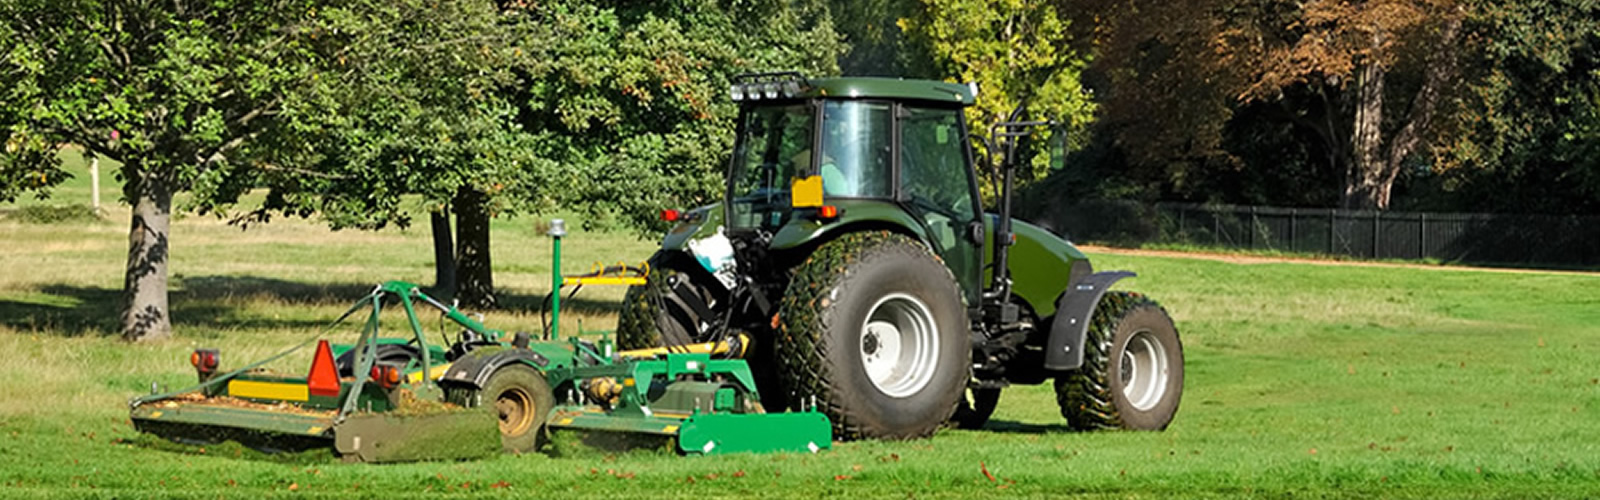 Fairways Hire | Hedge Cutters | Solihull